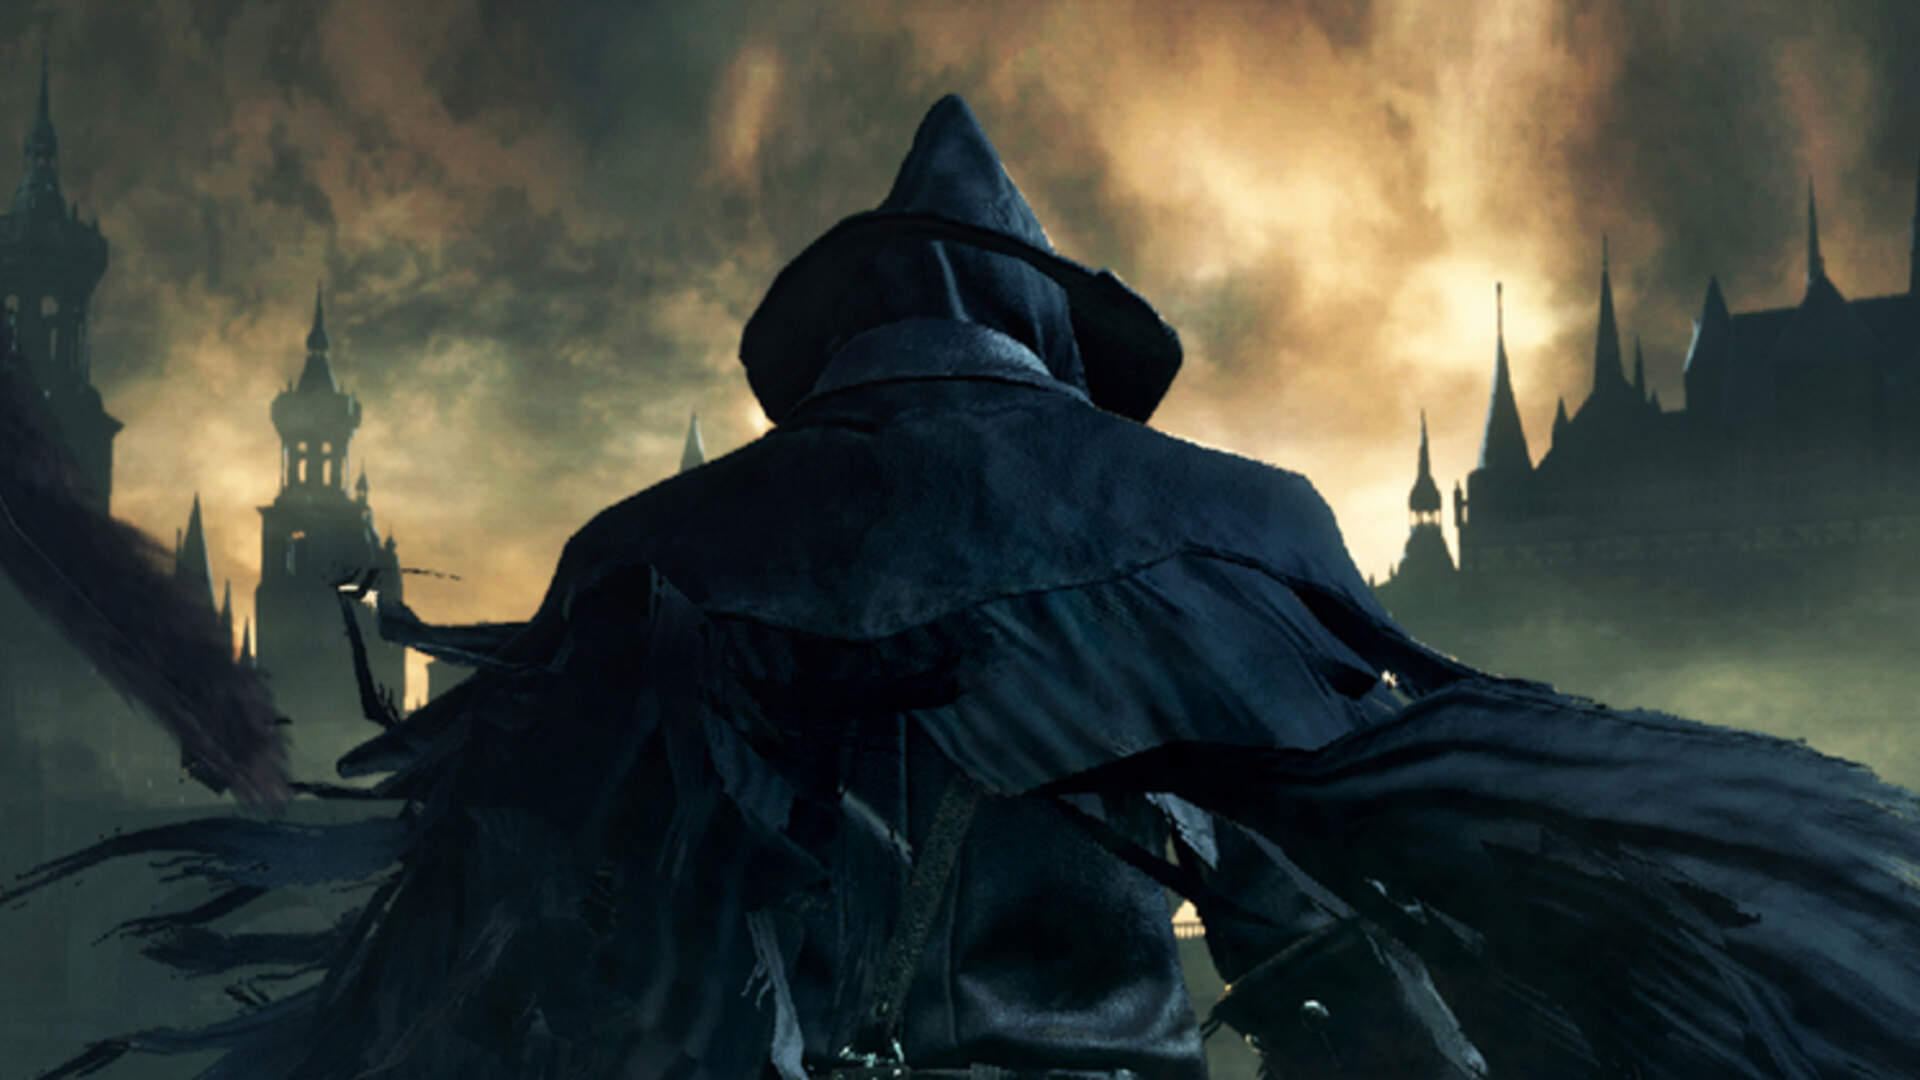 Bloodborne Central Yharnam Guide - How to Find Iosefka's Clinic Walkthrough